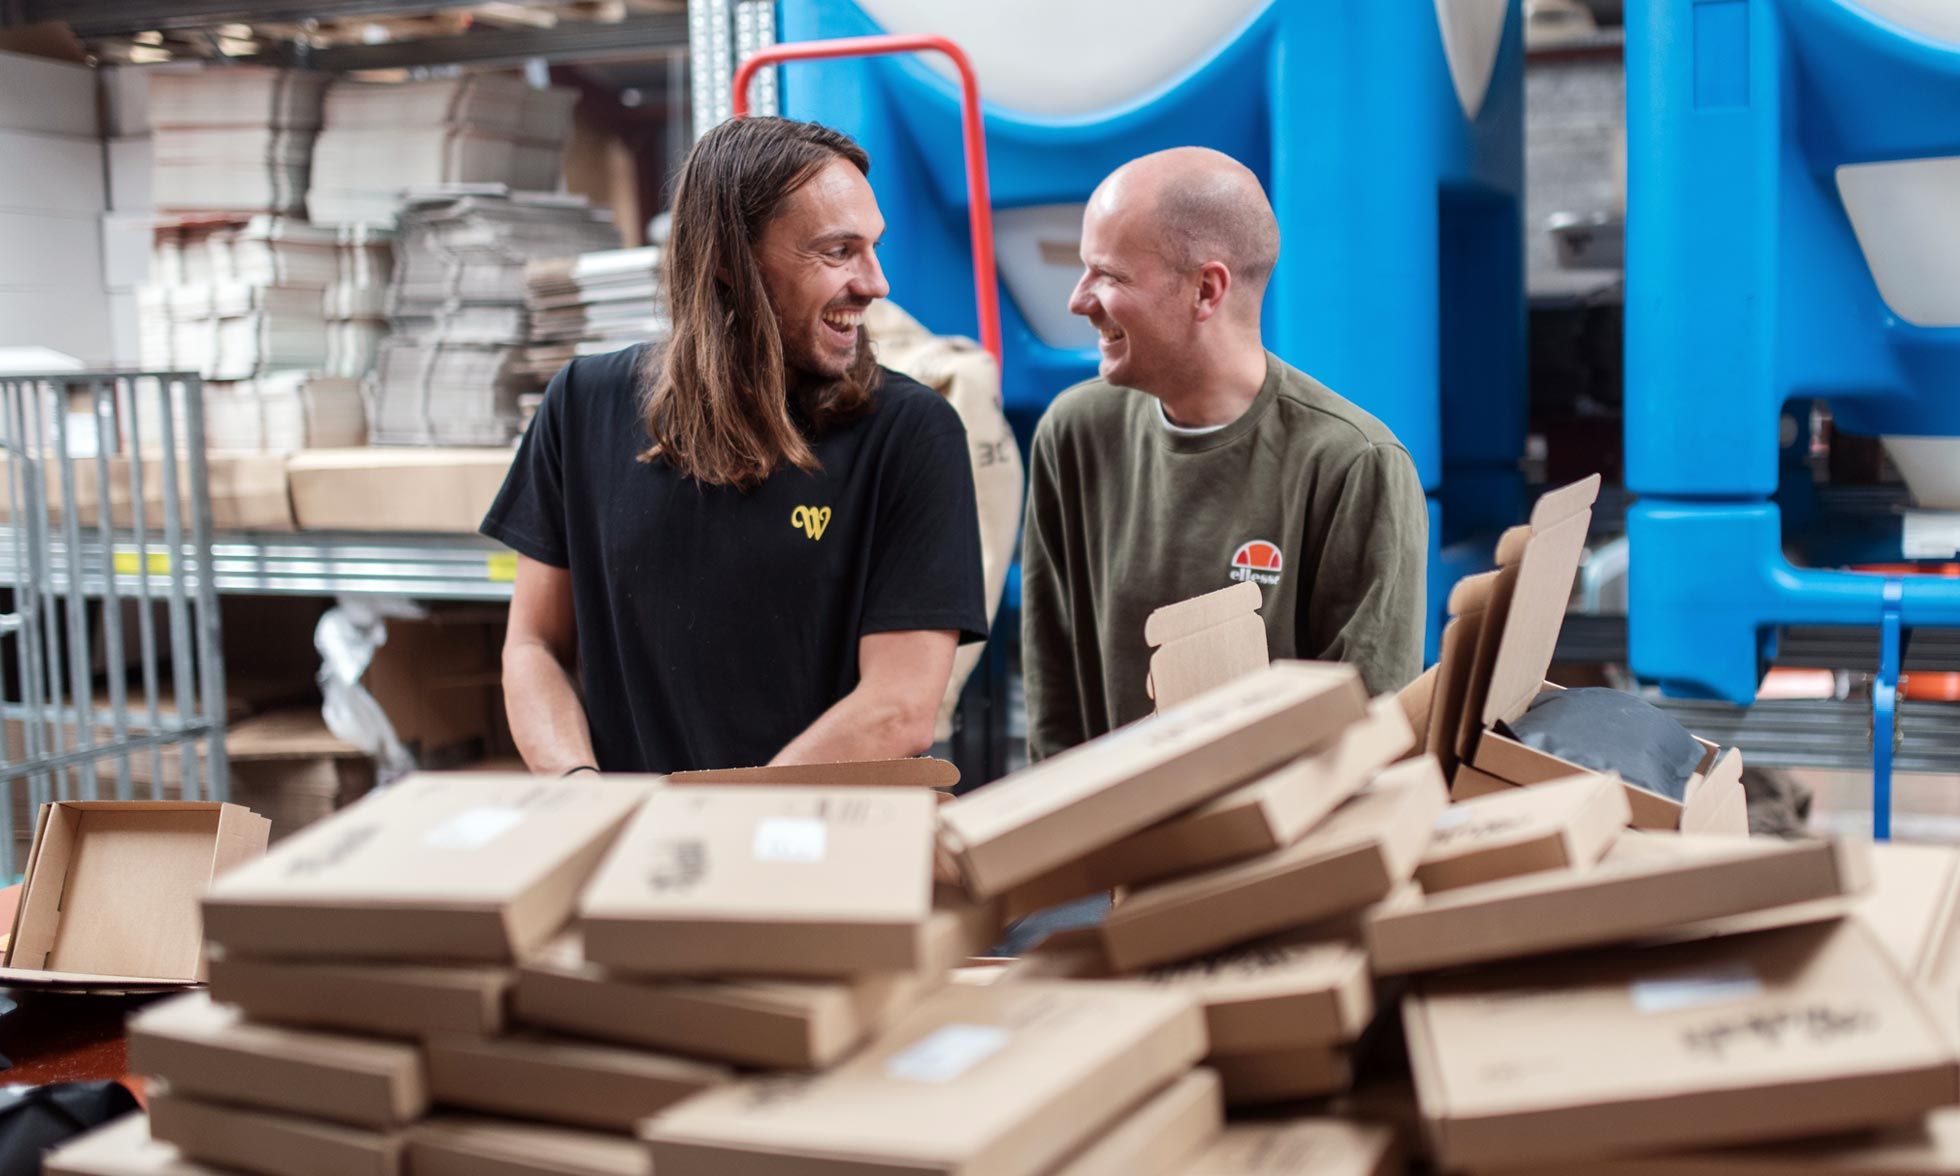 Two smiling guys behind a pile of packages